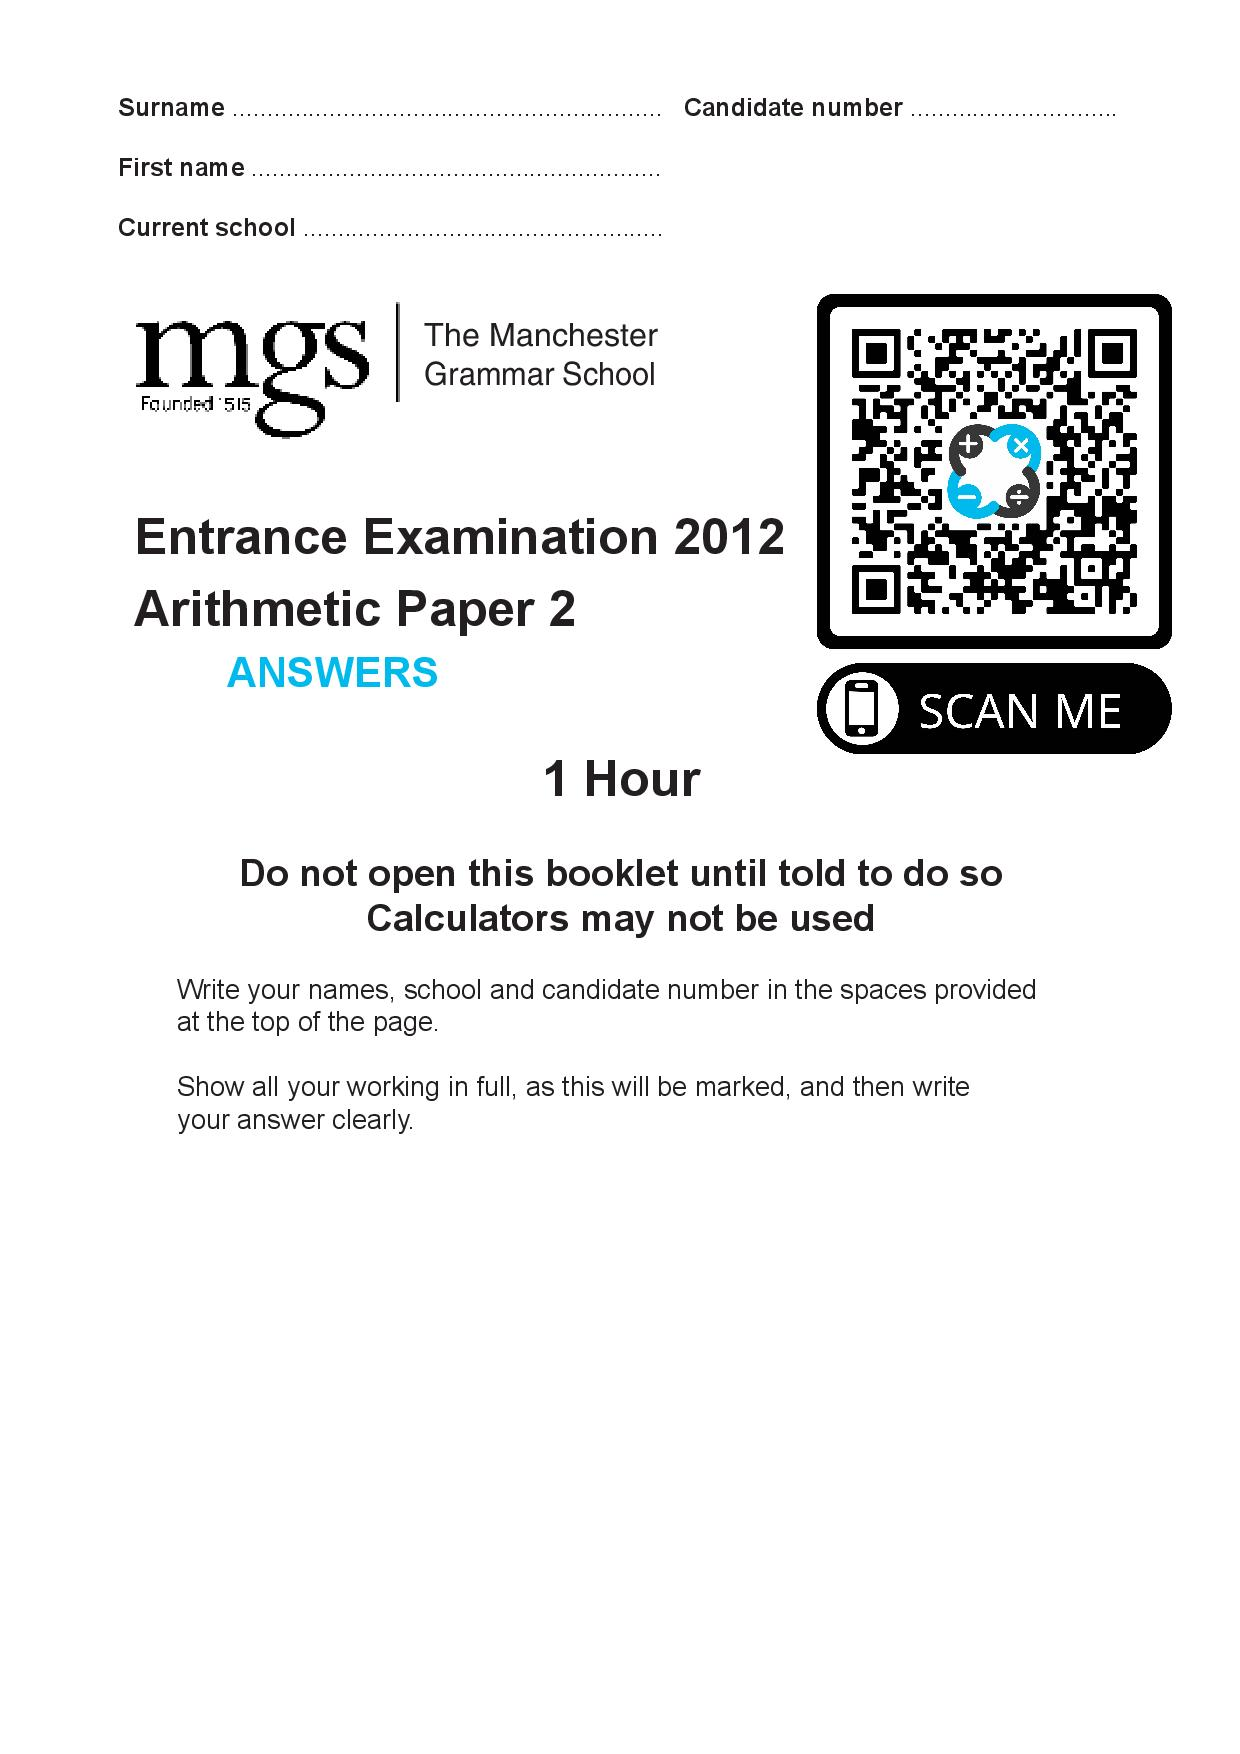 The Manchester Grammar School Entrance Examination 2012 Arithmetic Paper 2 Answer Paper page 001